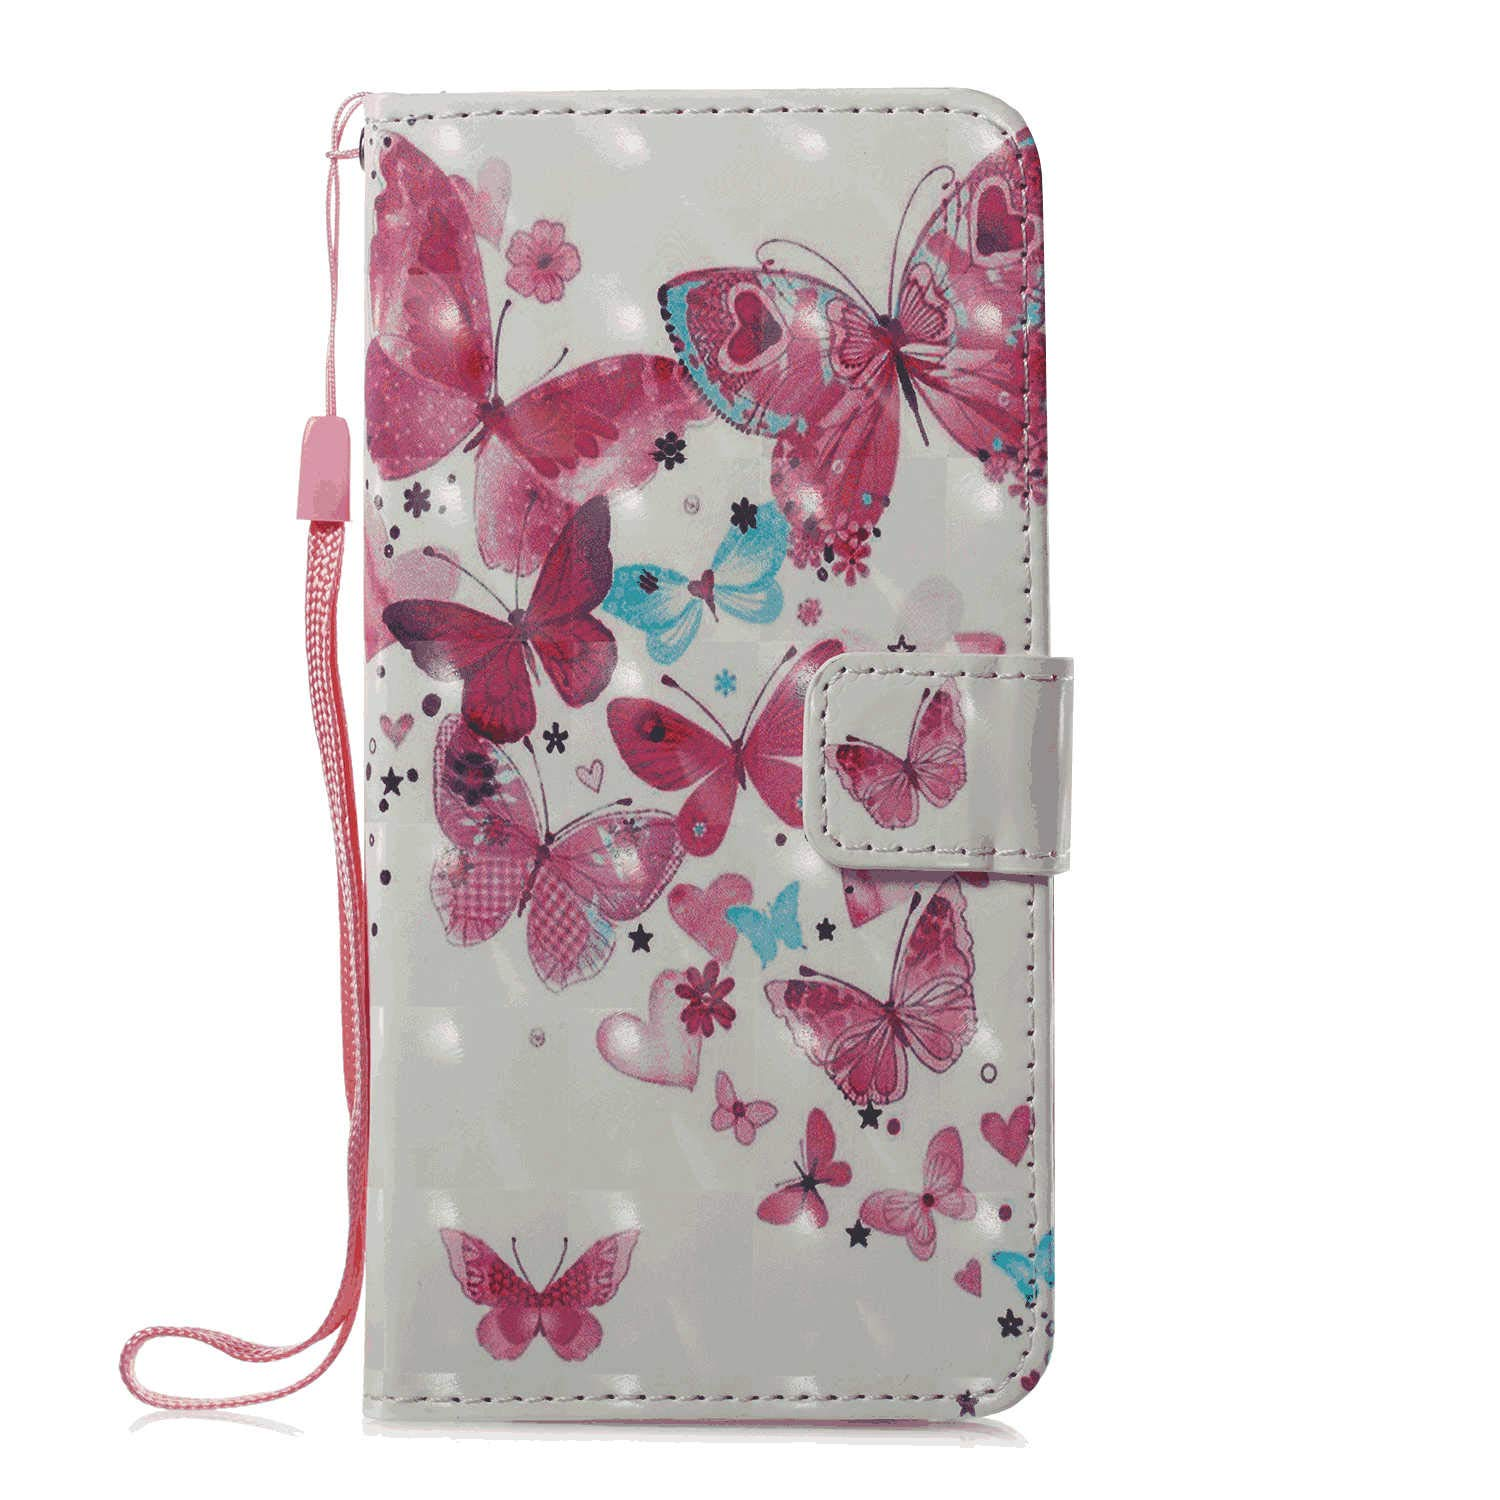 Flip Case for Samsung Galaxy S9, Leather Cover Business Gifts Wallet with Extra Waterproof Underwater Case